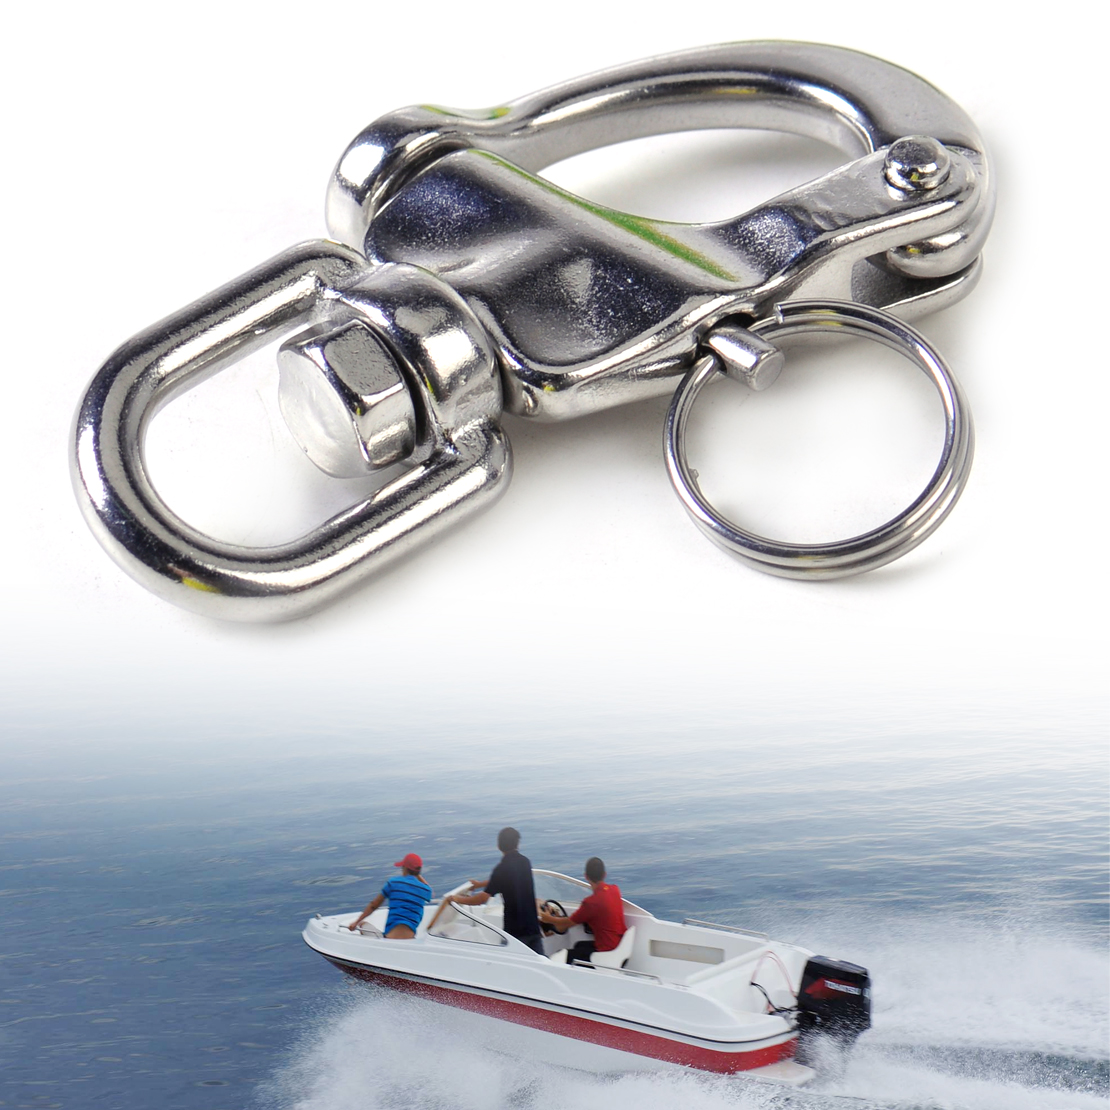 Marine Boat Snap Shackle Swivel Bail Yacht Sailing Hardware Stainless Steel